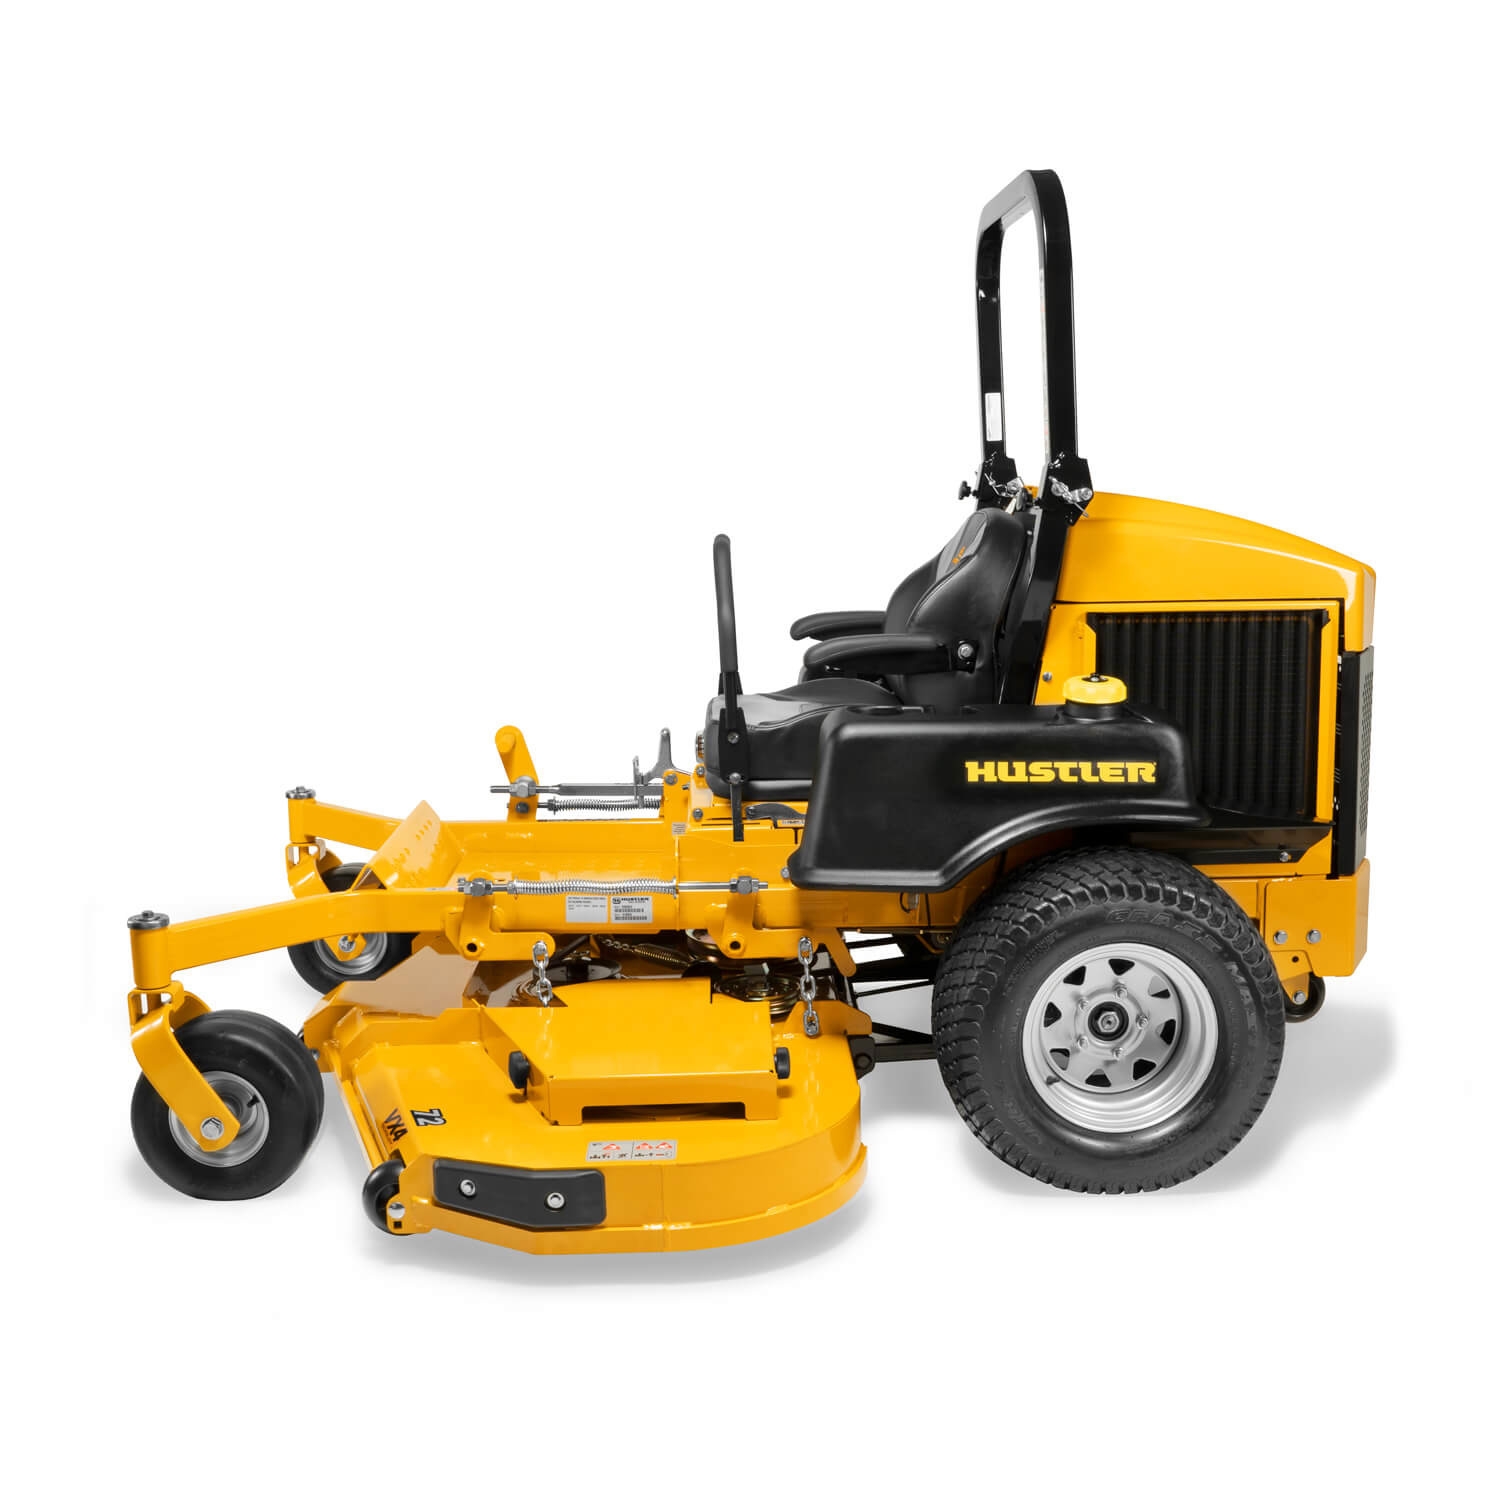 Image of the profile of a yellow zero-turn mower